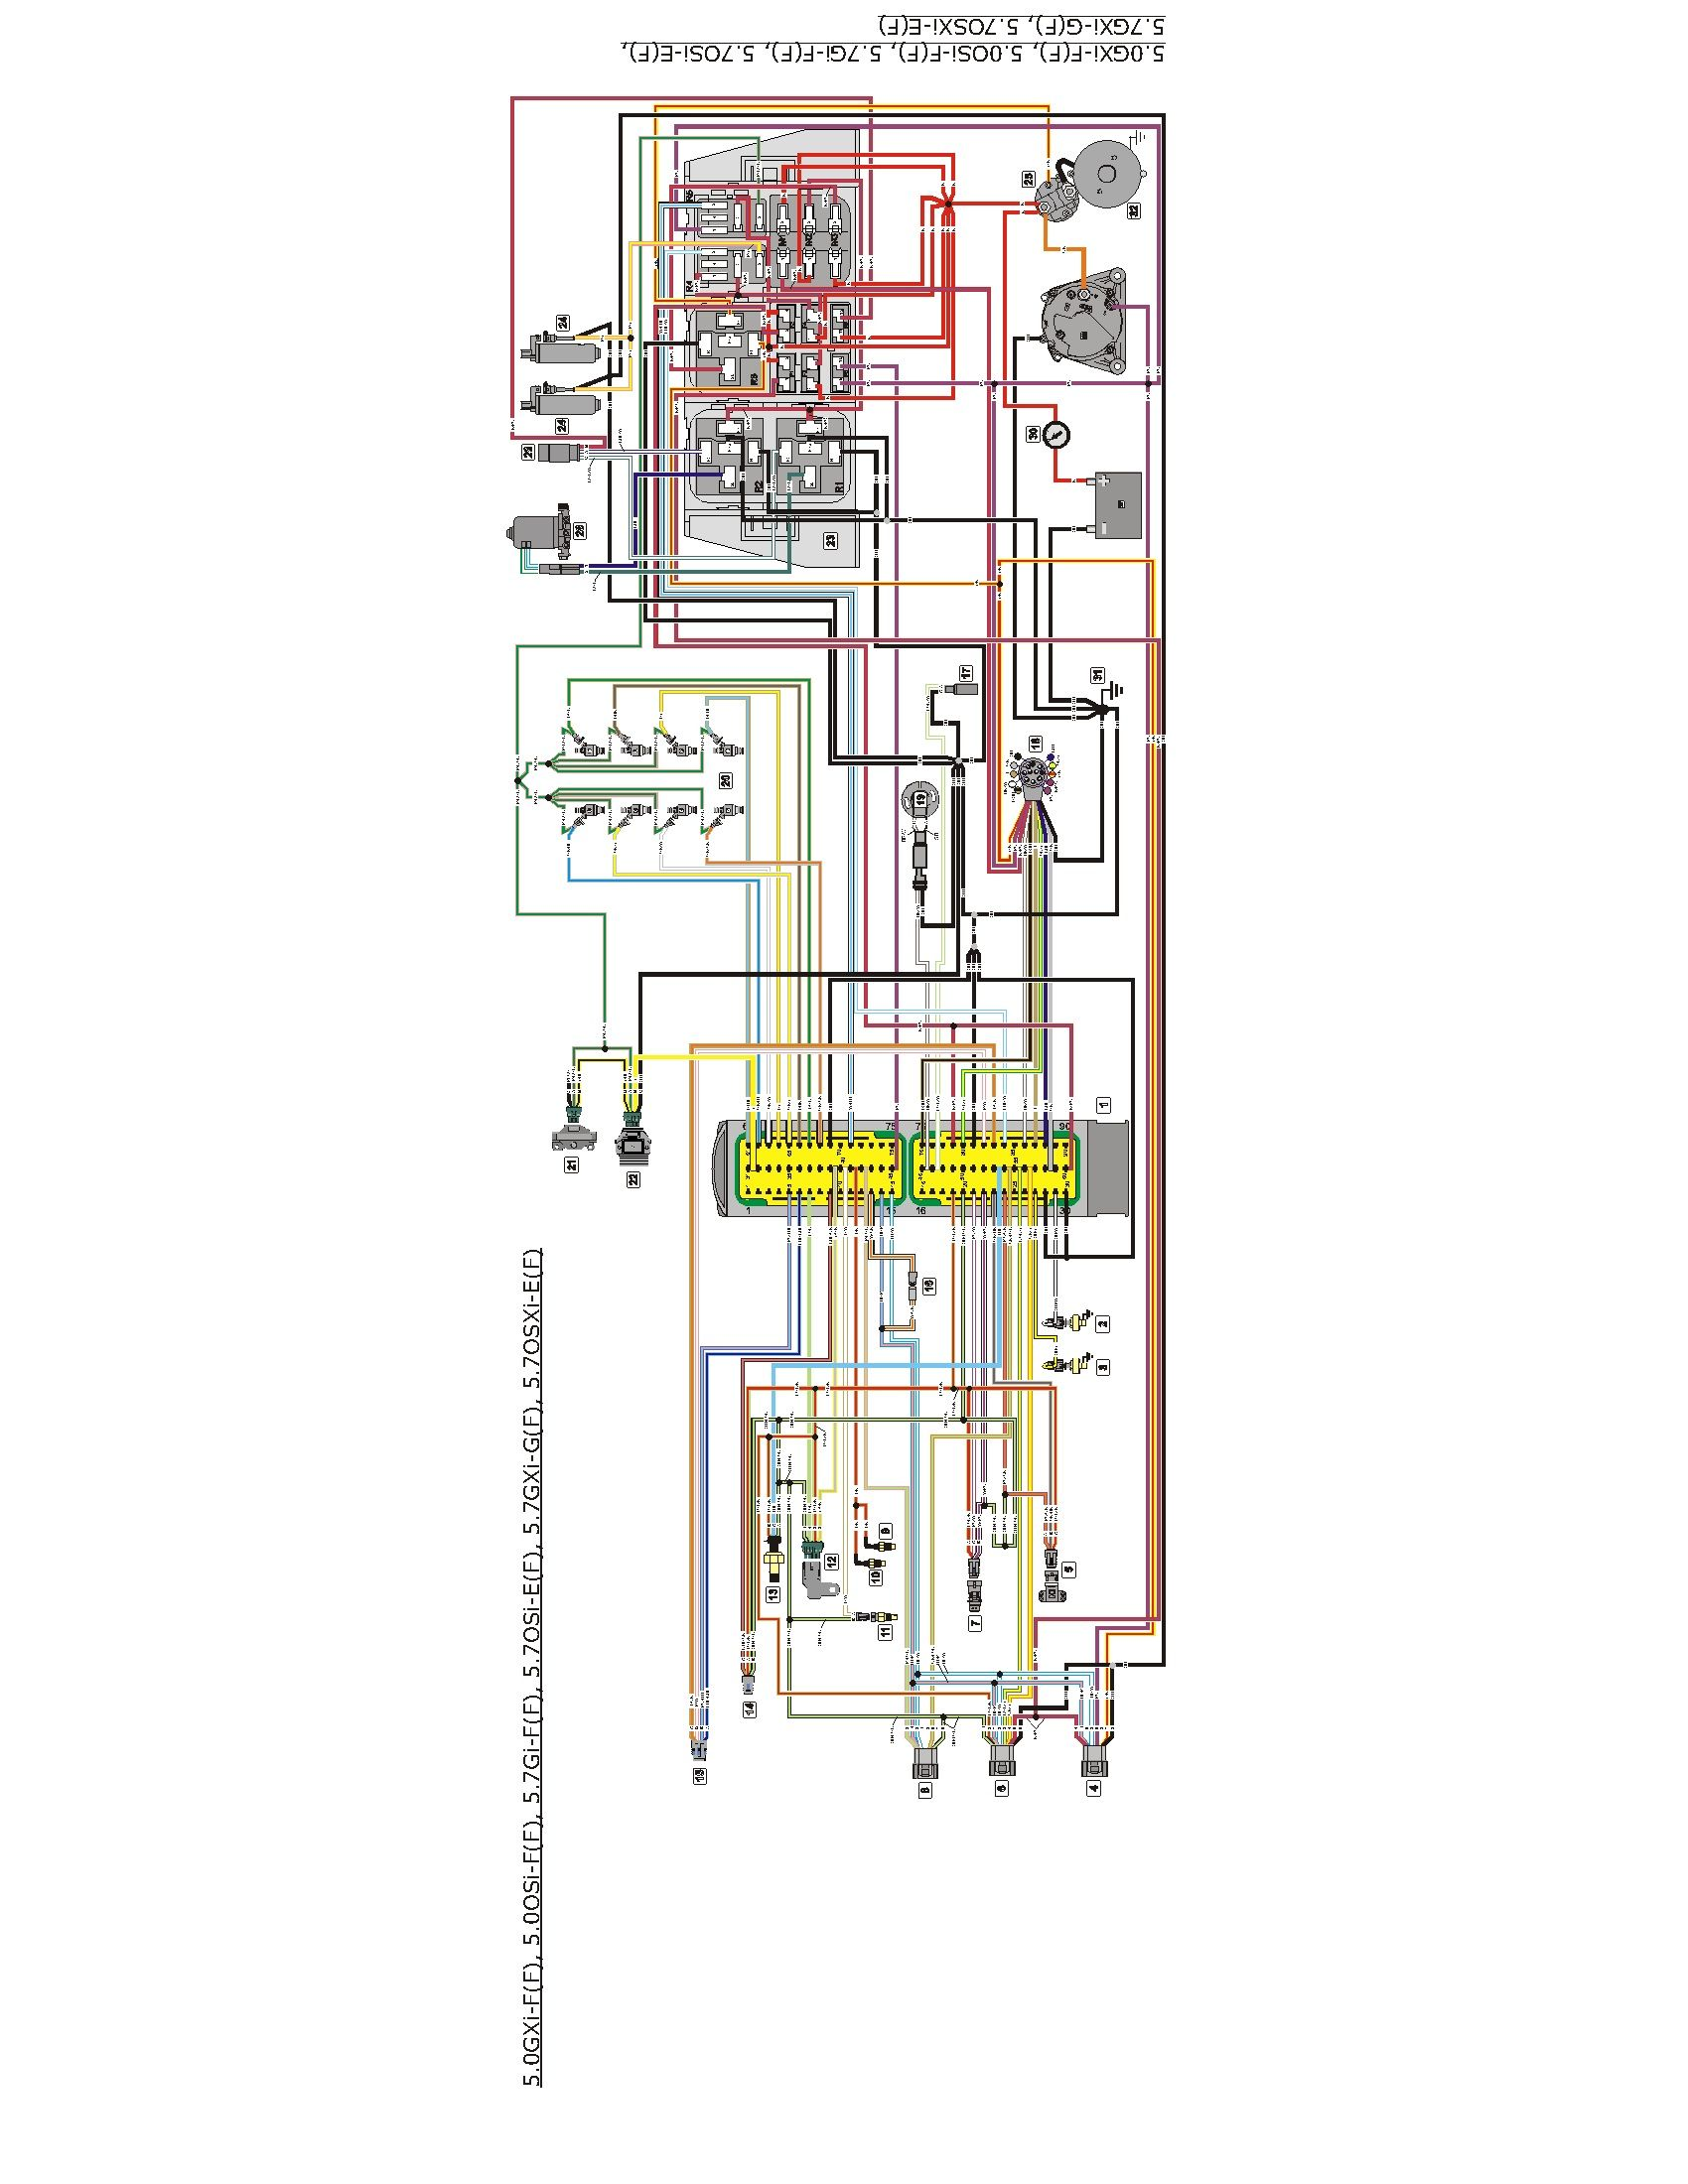 38e0106861e0fe47e508530985b32839 volvo penta 5 7 engine wiring diagram yate pinterest volvo volvo penta wiring harness diagram at bayanpartner.co